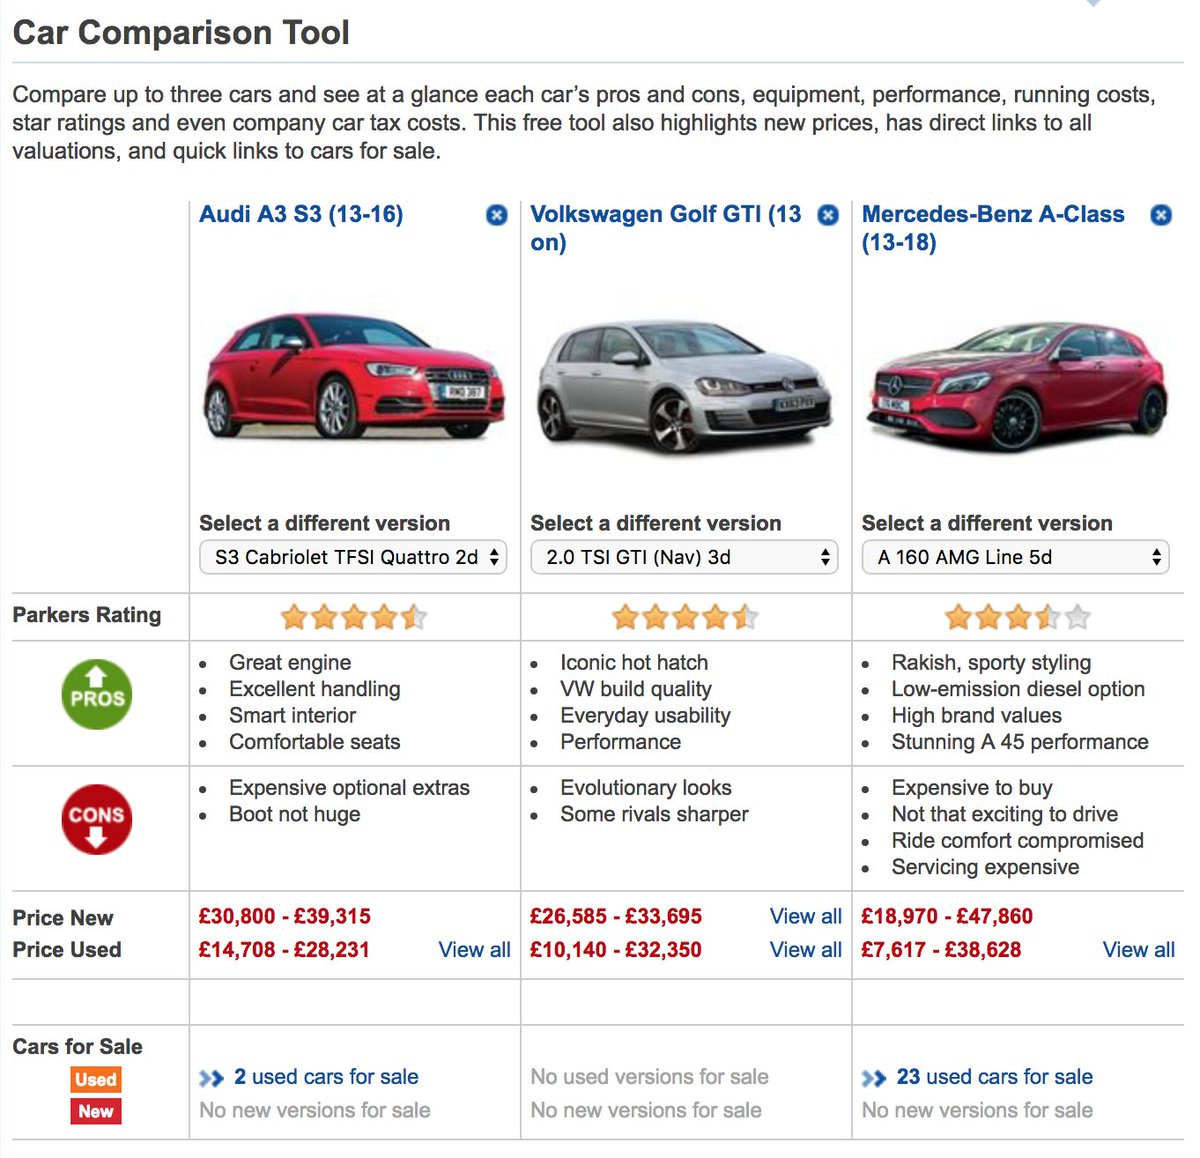 Eurodrive Finance Pa Twitter Stuck Between Two Or Three Cars Not A Problem The Car Comparison Tool From Parkers Helps You Compare Your Options In Detail Https T Co 4oa3ltiq6b Eurodrivemotorfinance Is Right Here